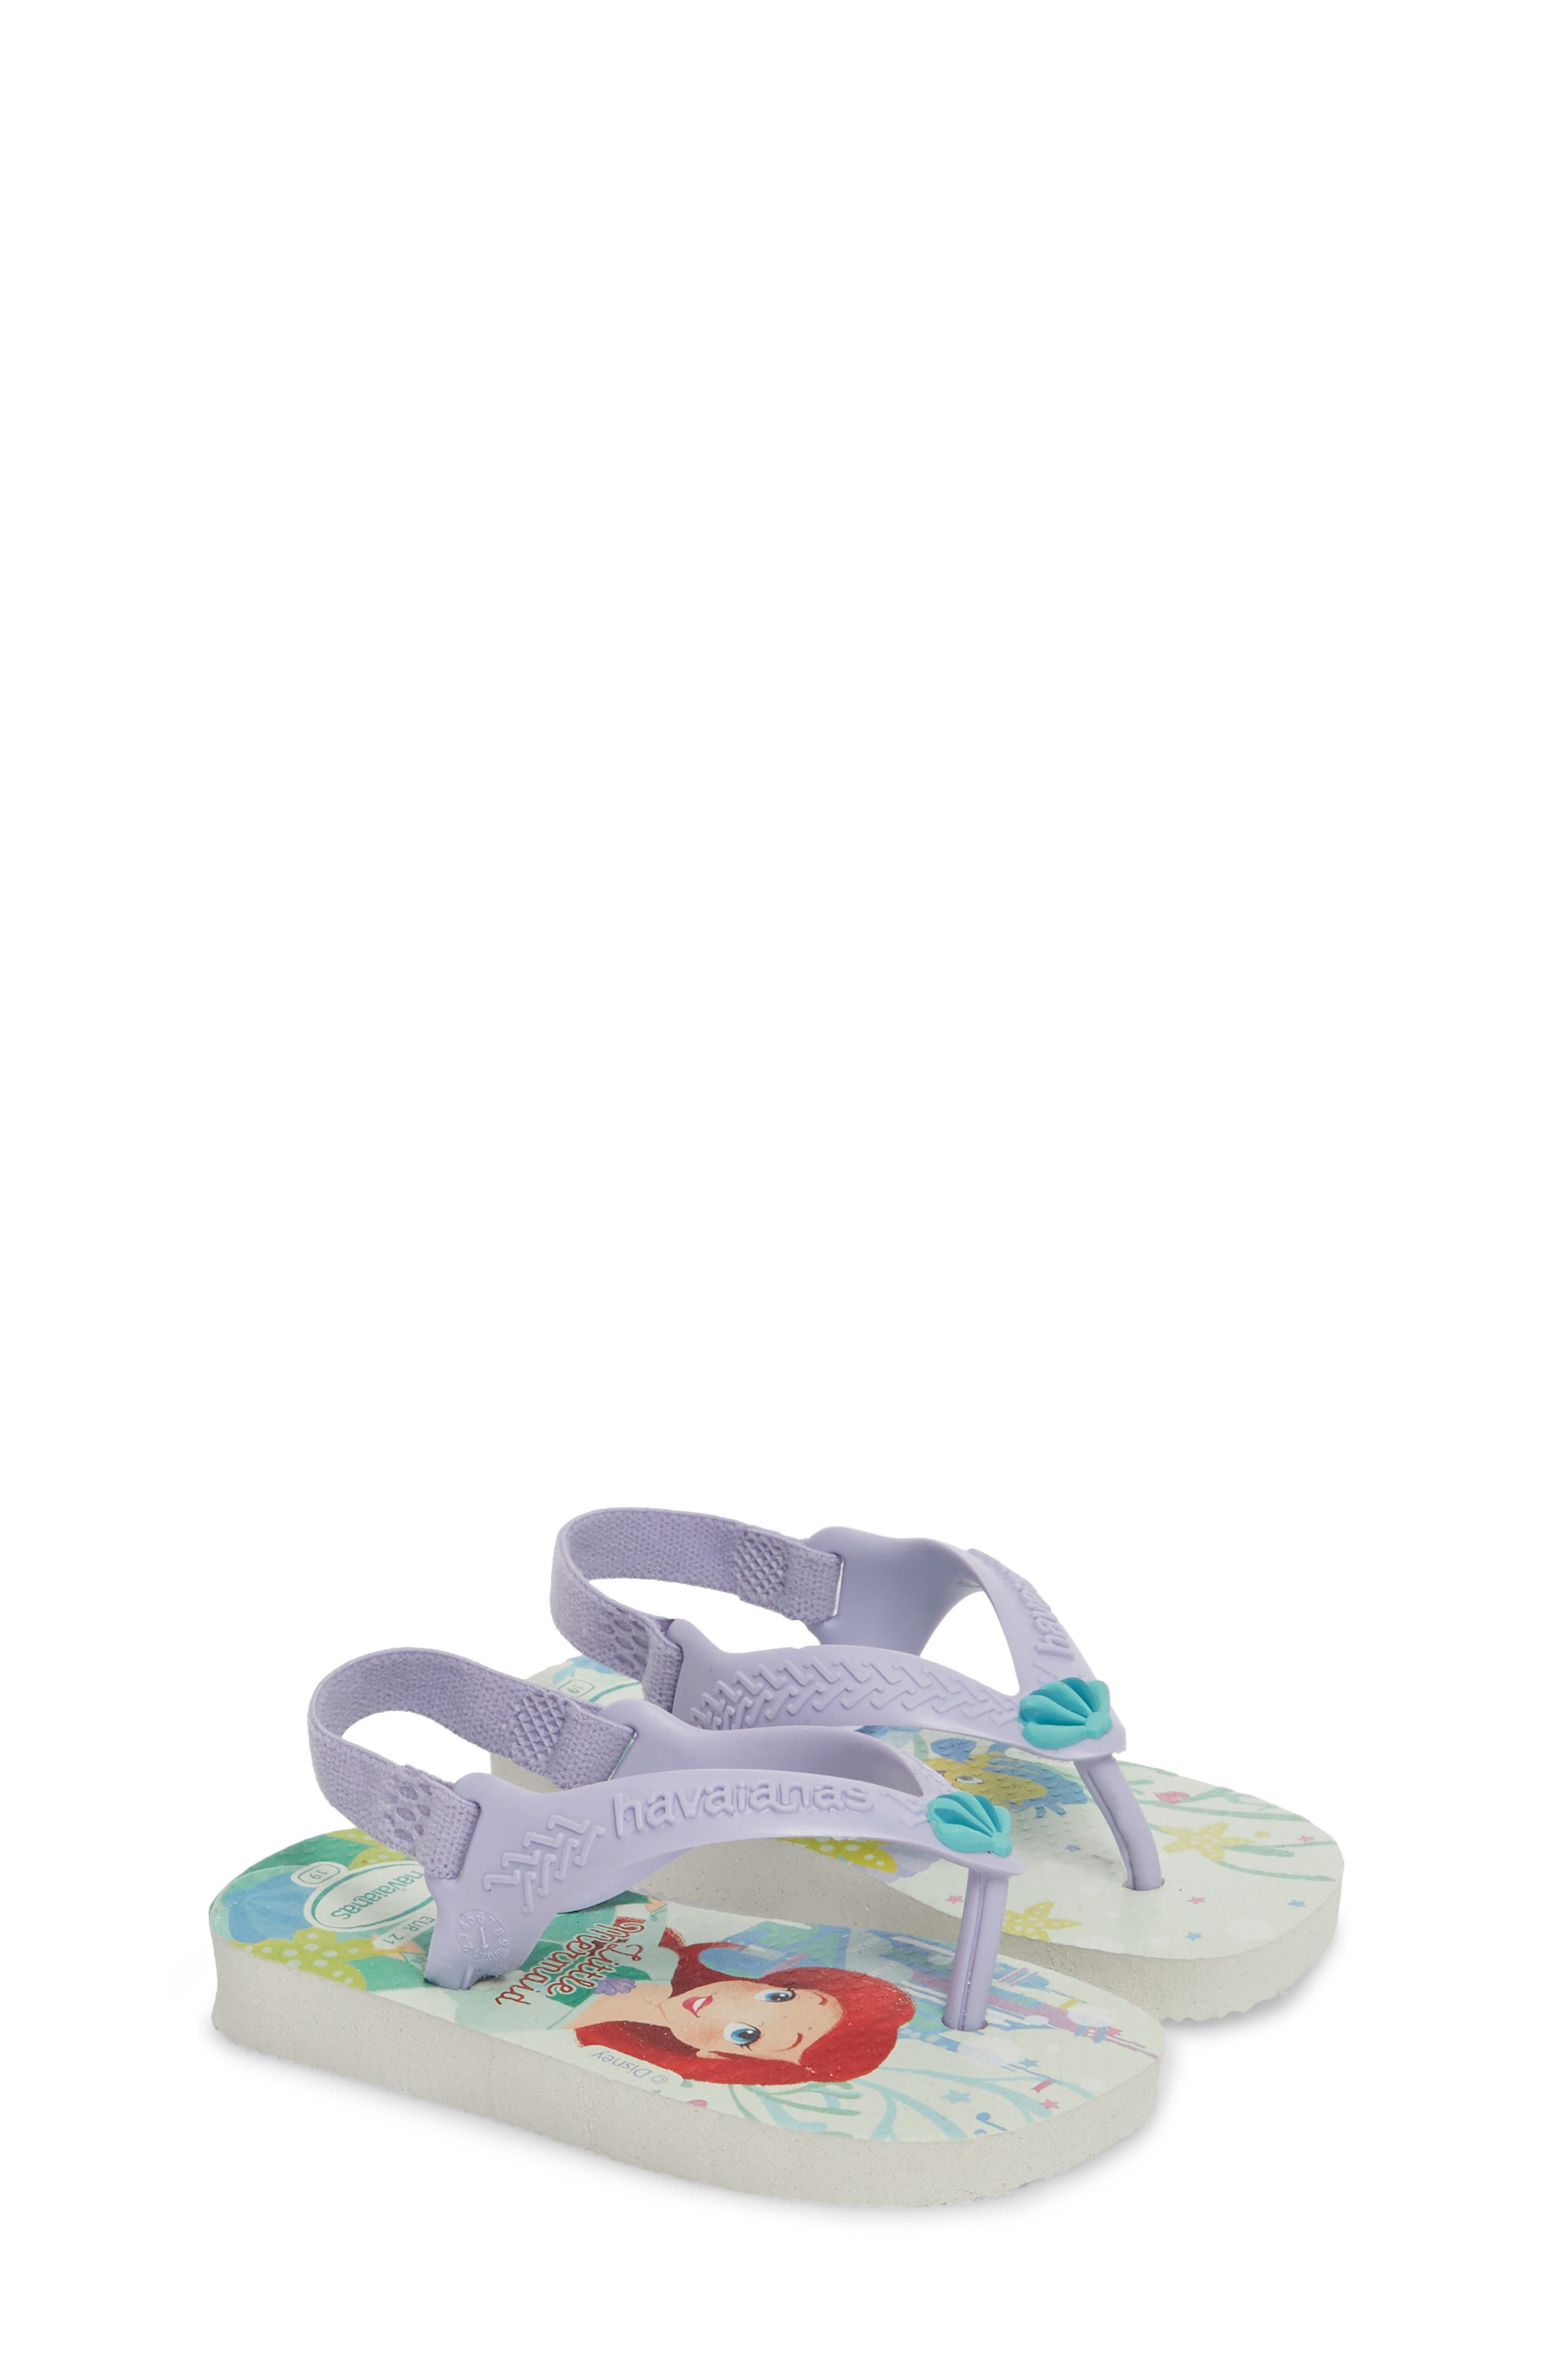 Baby Disney<sup>®</sup> Princess Flip Flop,                             Alternate thumbnail 2, color,                             100